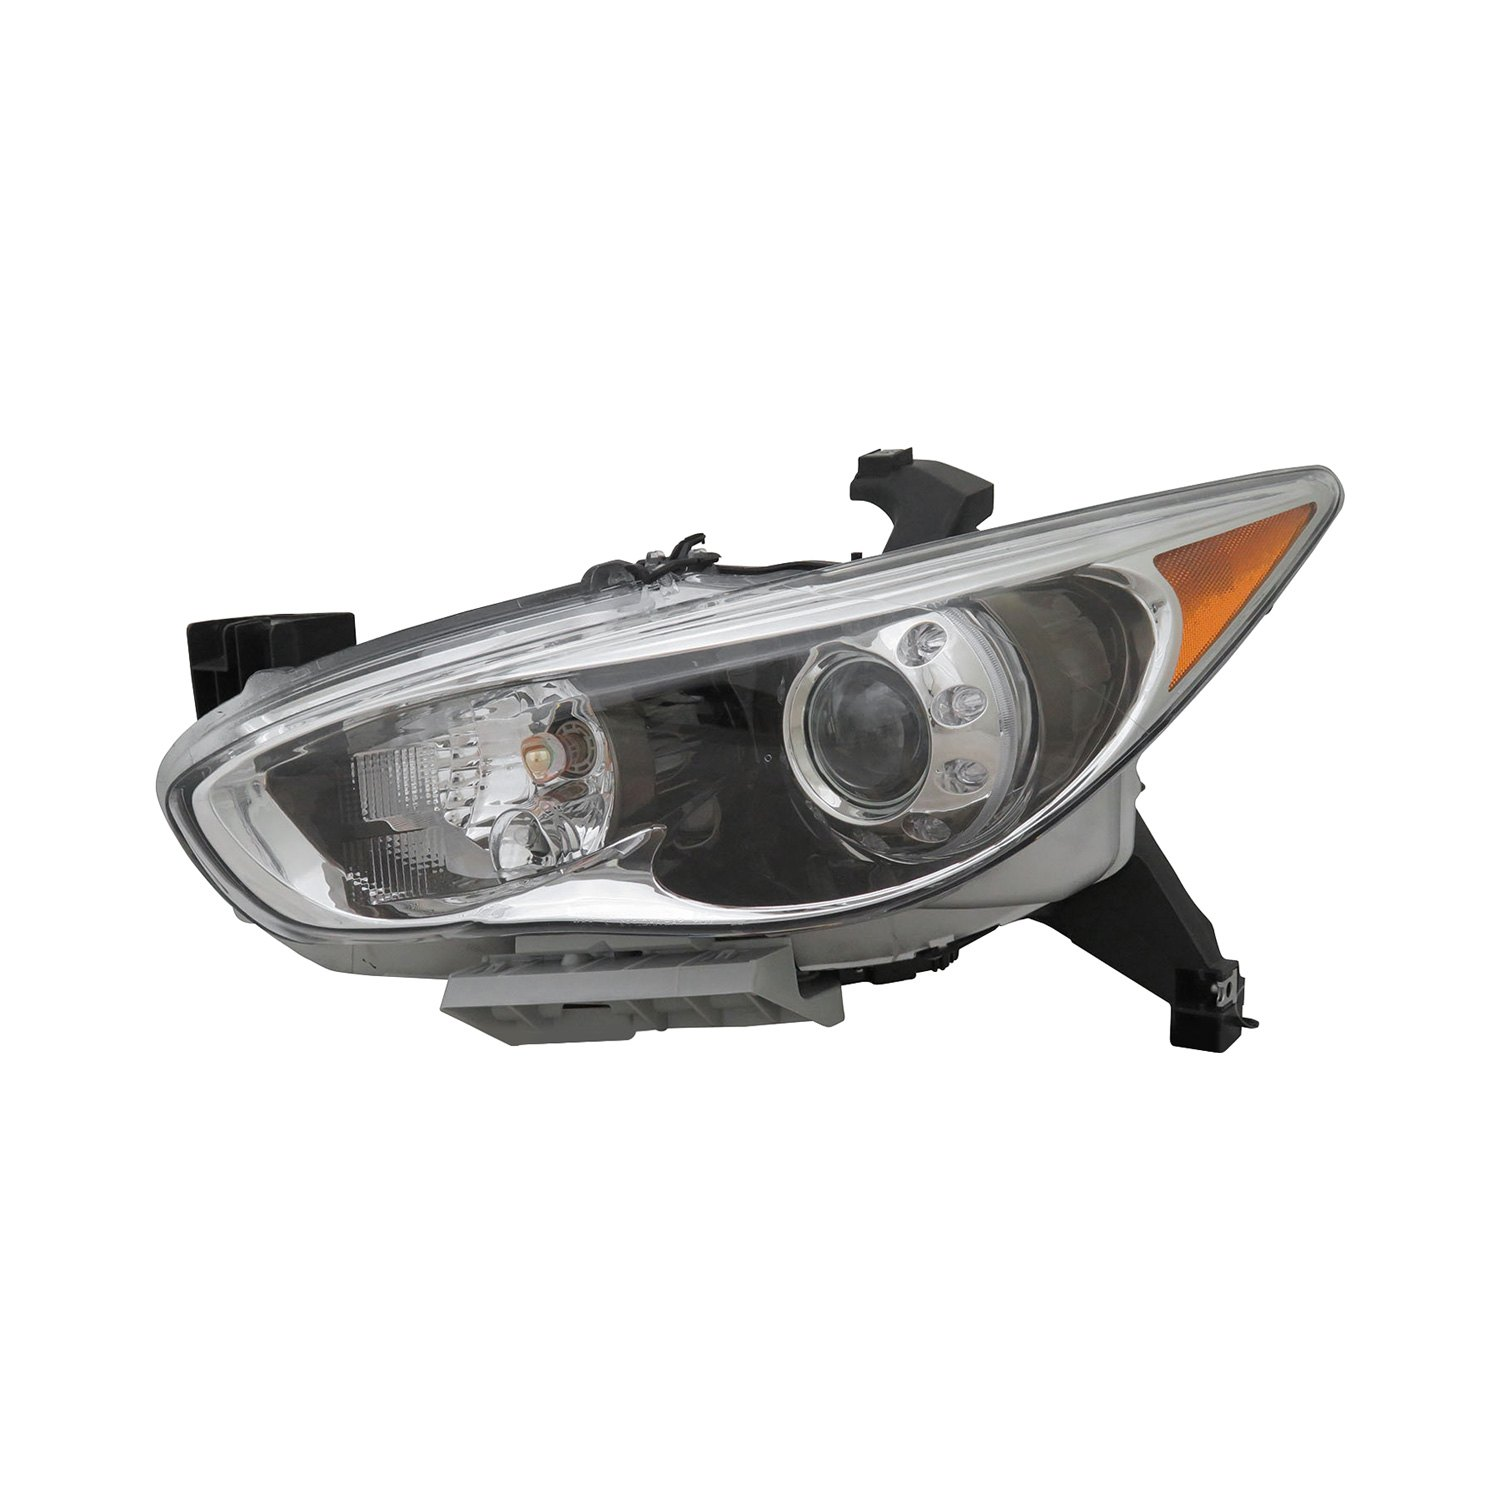 Qx60 Headlight And Fog Light Upgrade Wiring Diagrams Schematics Infiniti Fuse Box Tyc 2014 2015 Replacement Spoiler Lights Paintings Of Bars